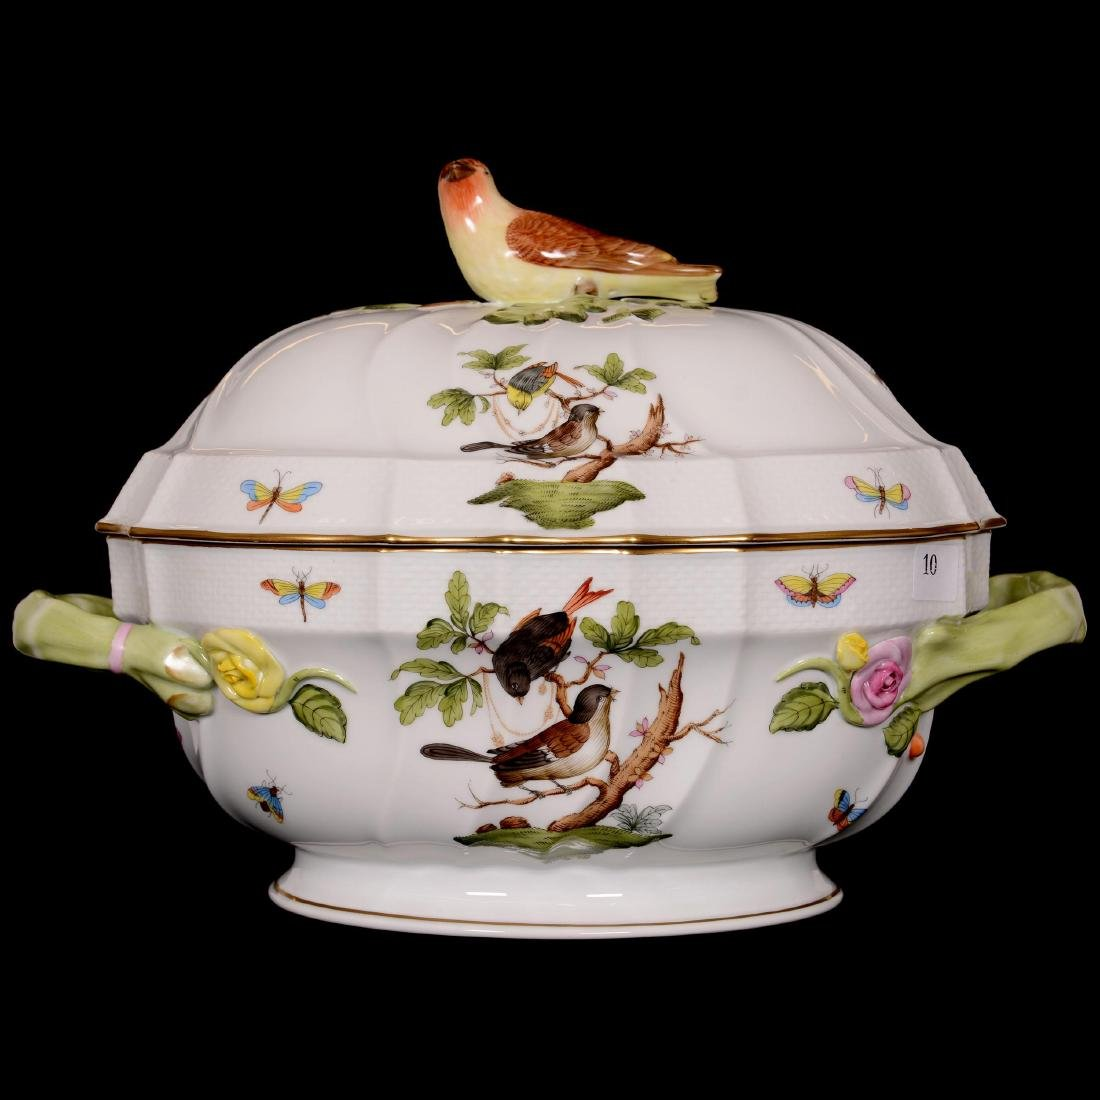 Herend Hungary Porcelain Hand Painted Covered Tureen